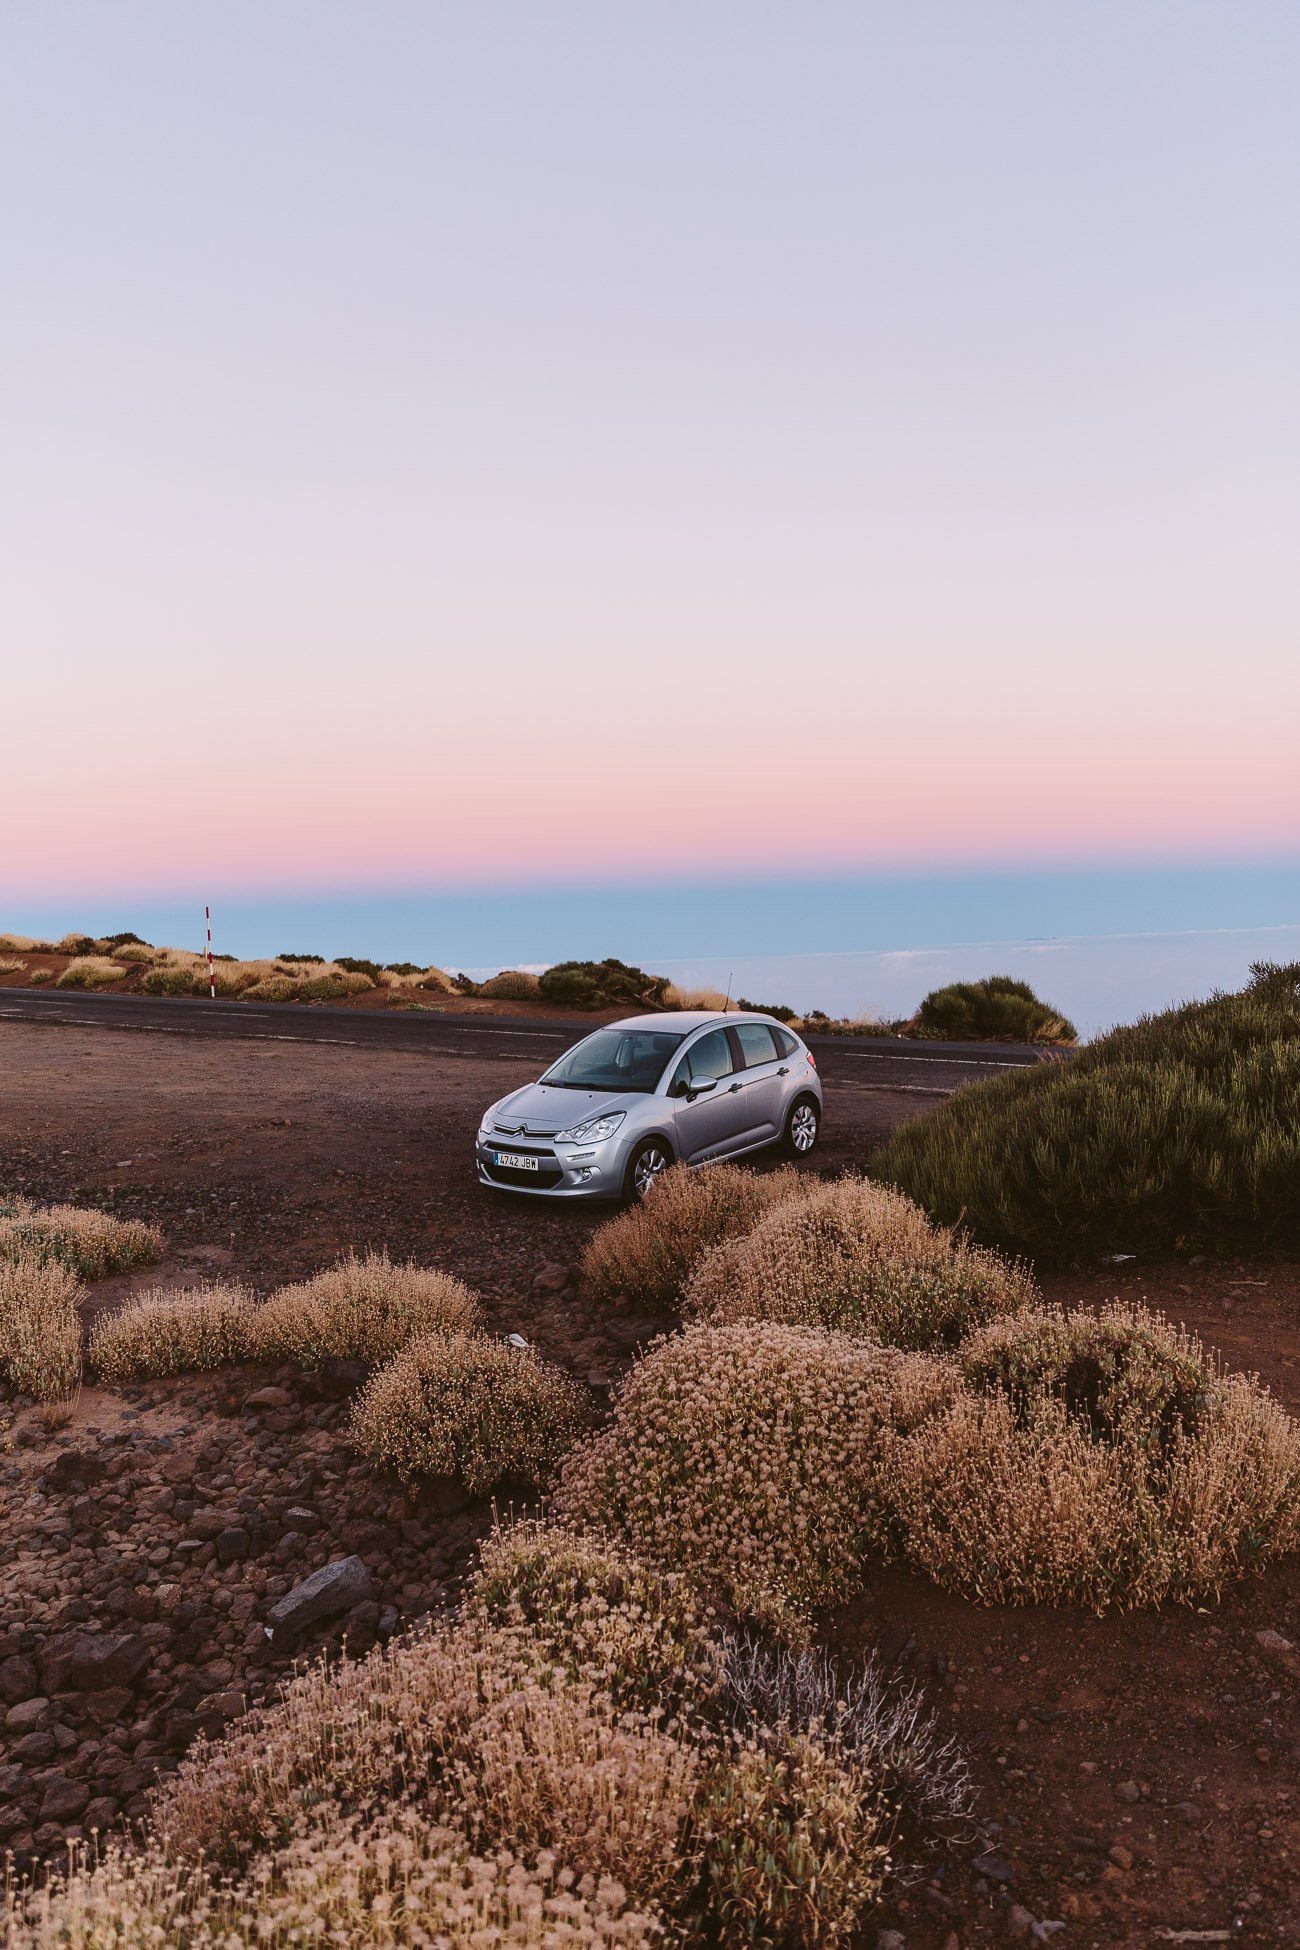 Rent a car in Tenerife and go up to El Teide